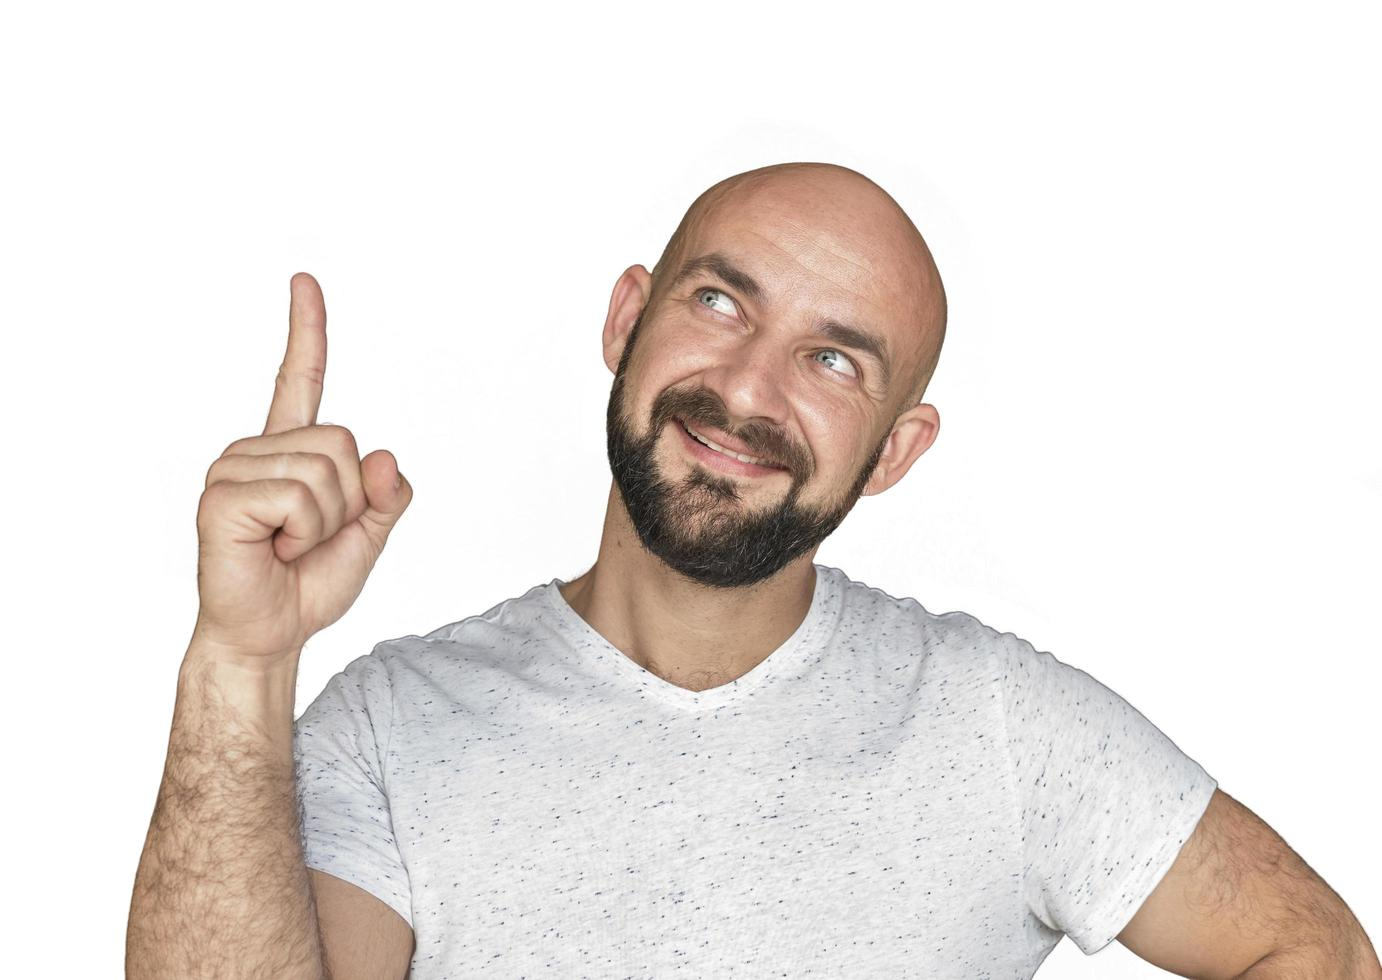 Portrait Of white bald man with beard in white t shirt smiling and showing thumb up isolate on a white background photo